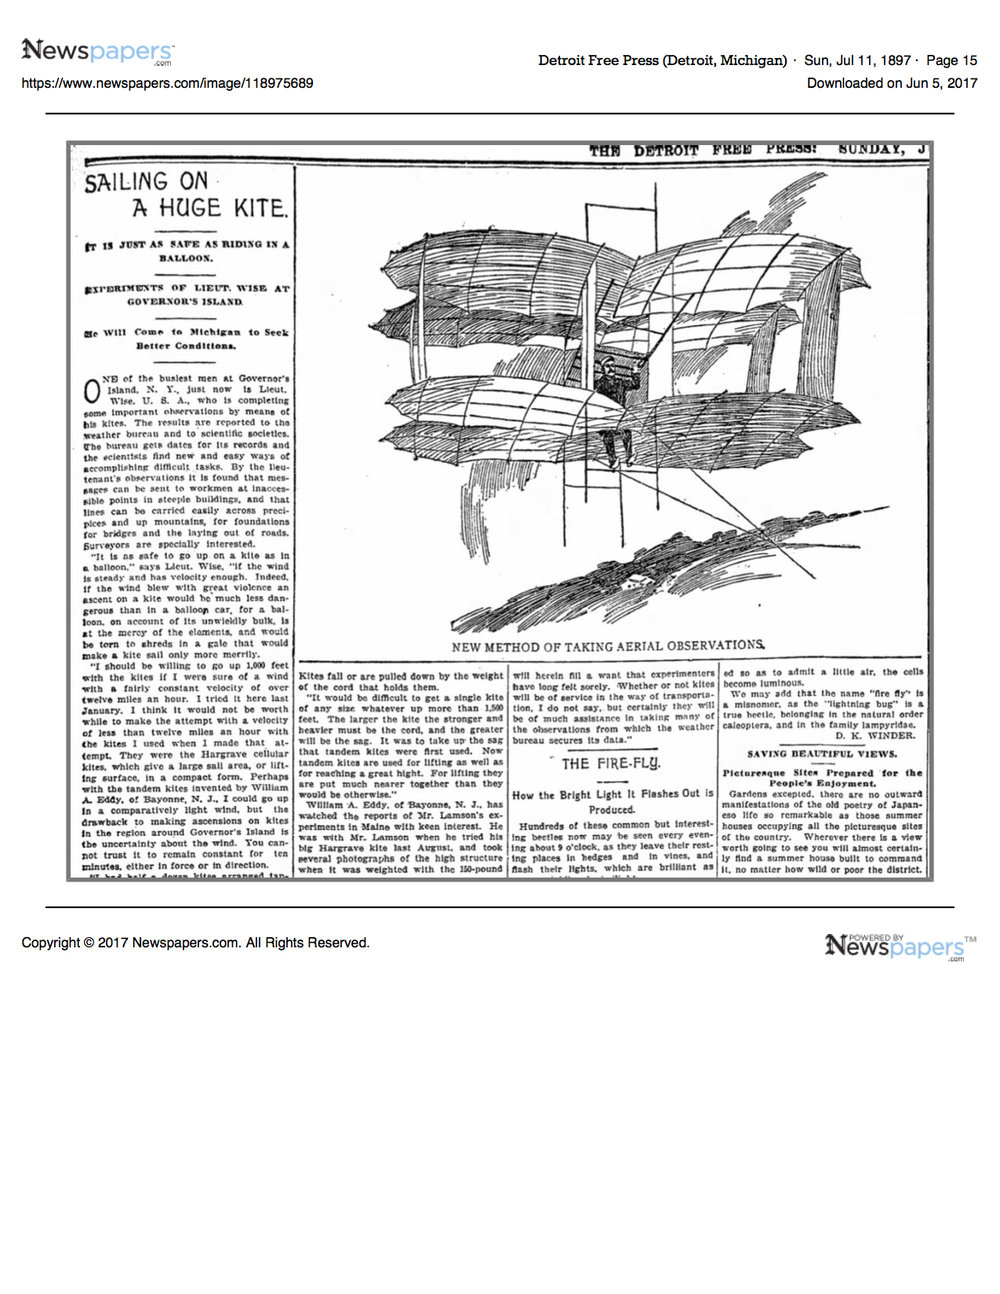 Detroit_Free_Press_Sun__Jul_11__1897_.jpg